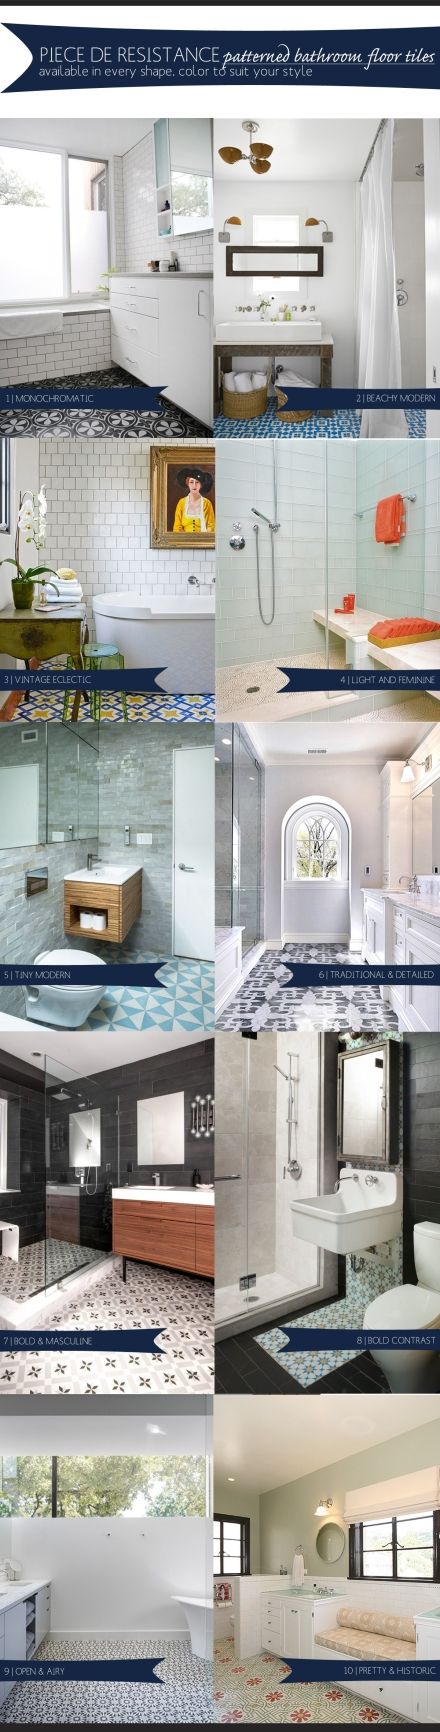 patterned-floor-tiles-bathroom copy